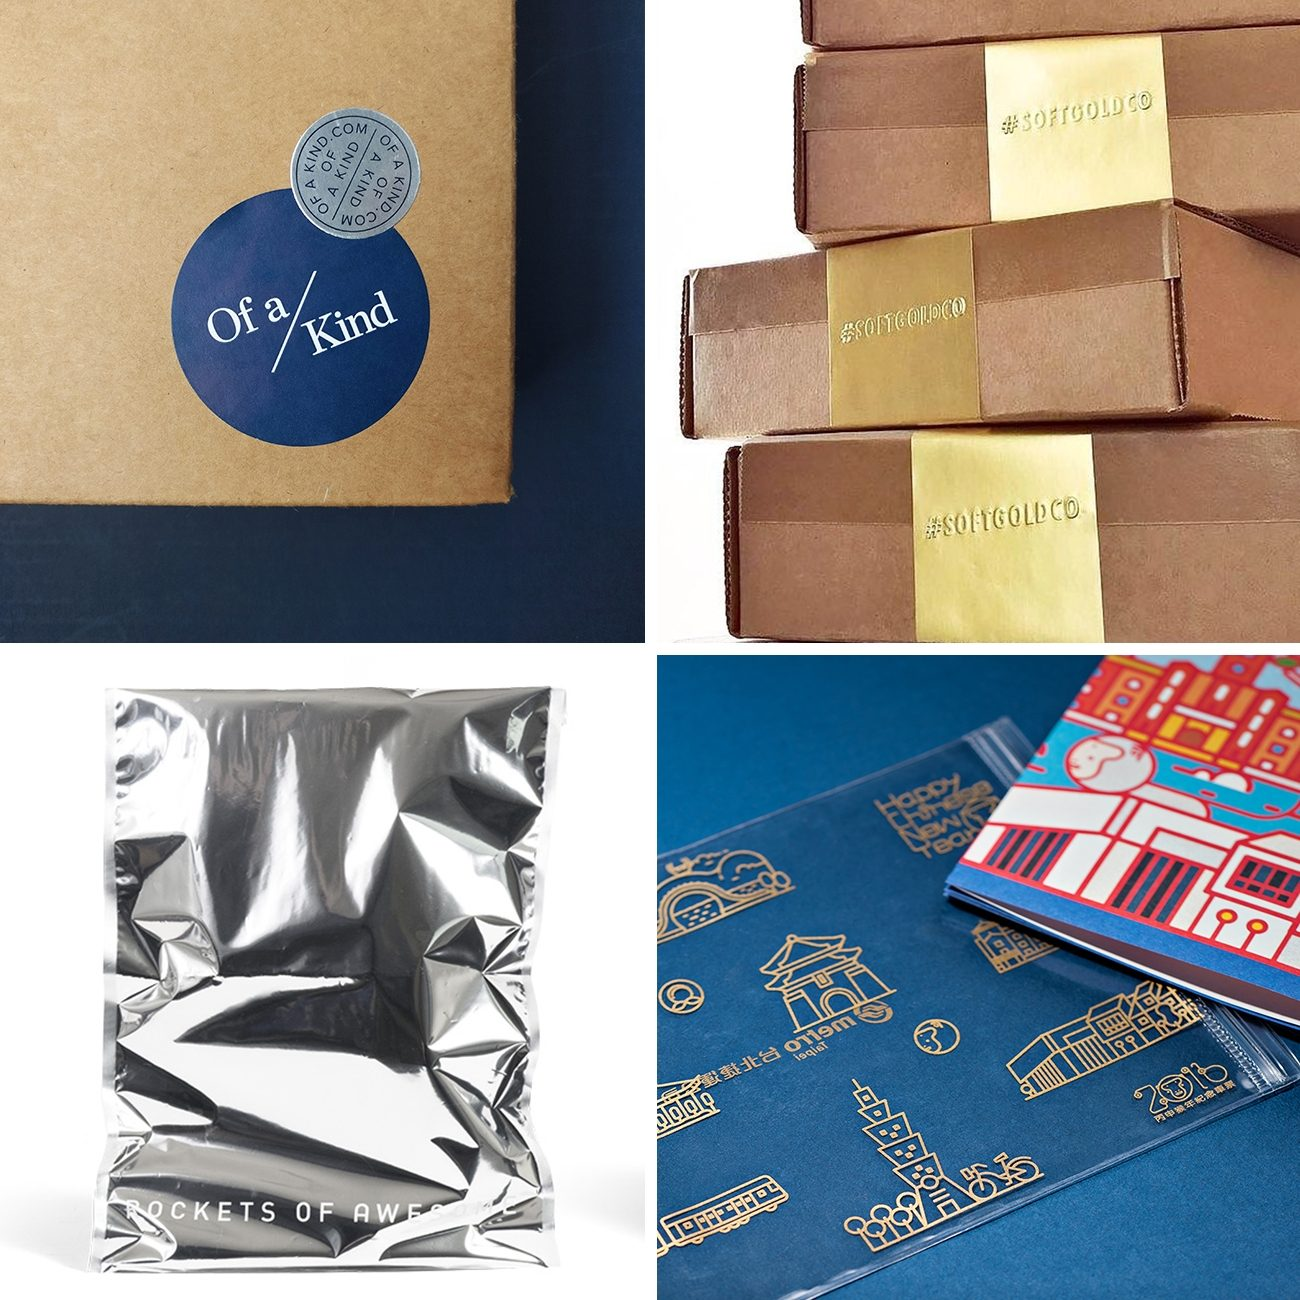 Photos via: FourPlus and Ivaylo Nedkov, Lumi, Soft Gold Co, Lumi, Midnight Design and Kuocheng Liao 70 Ideas to Spruce Up Your Holiday Packaging Design